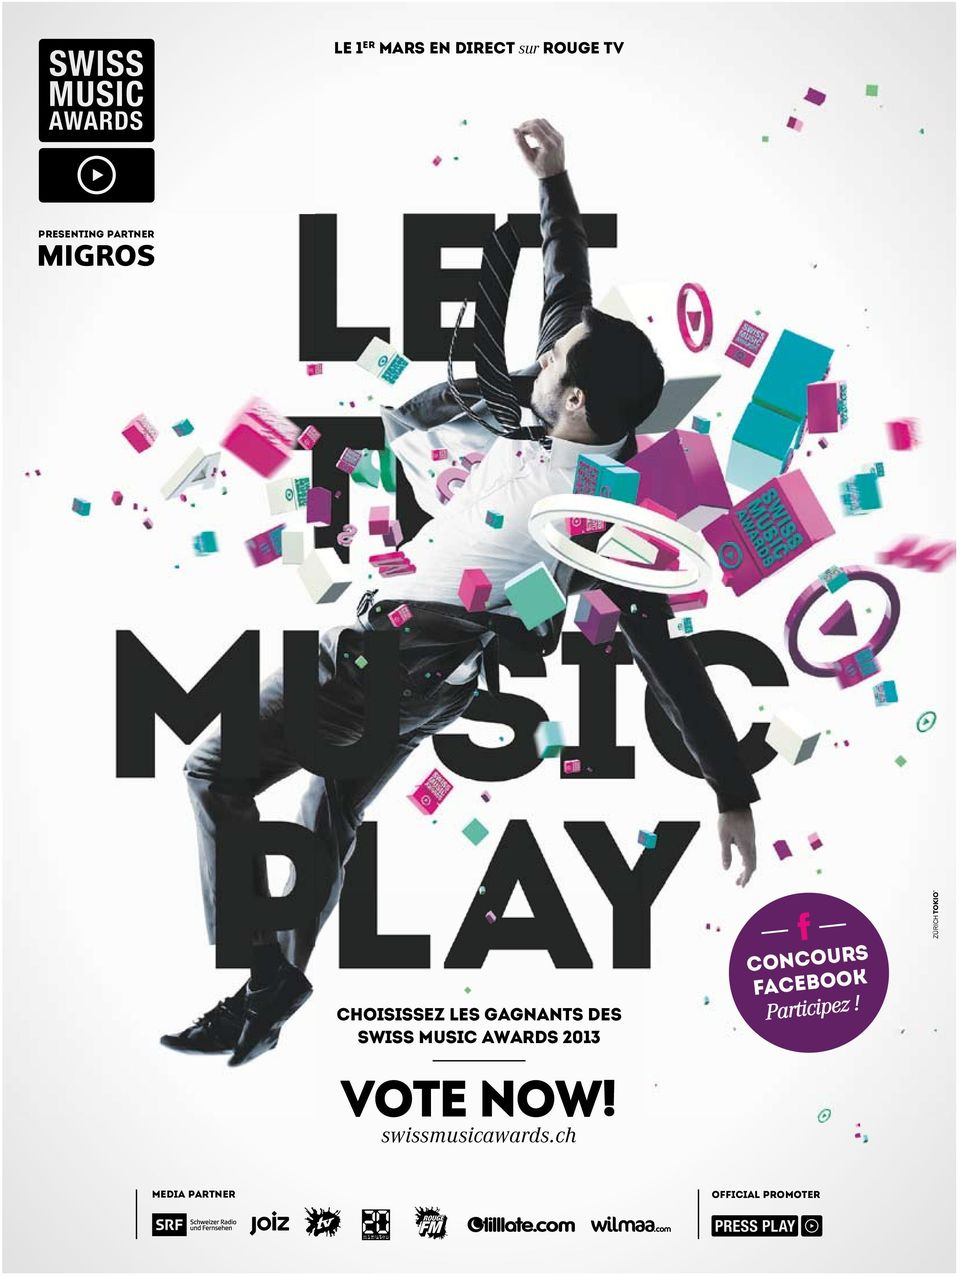 AWARDS 2013 VOTE NOW! swissmusicawards.